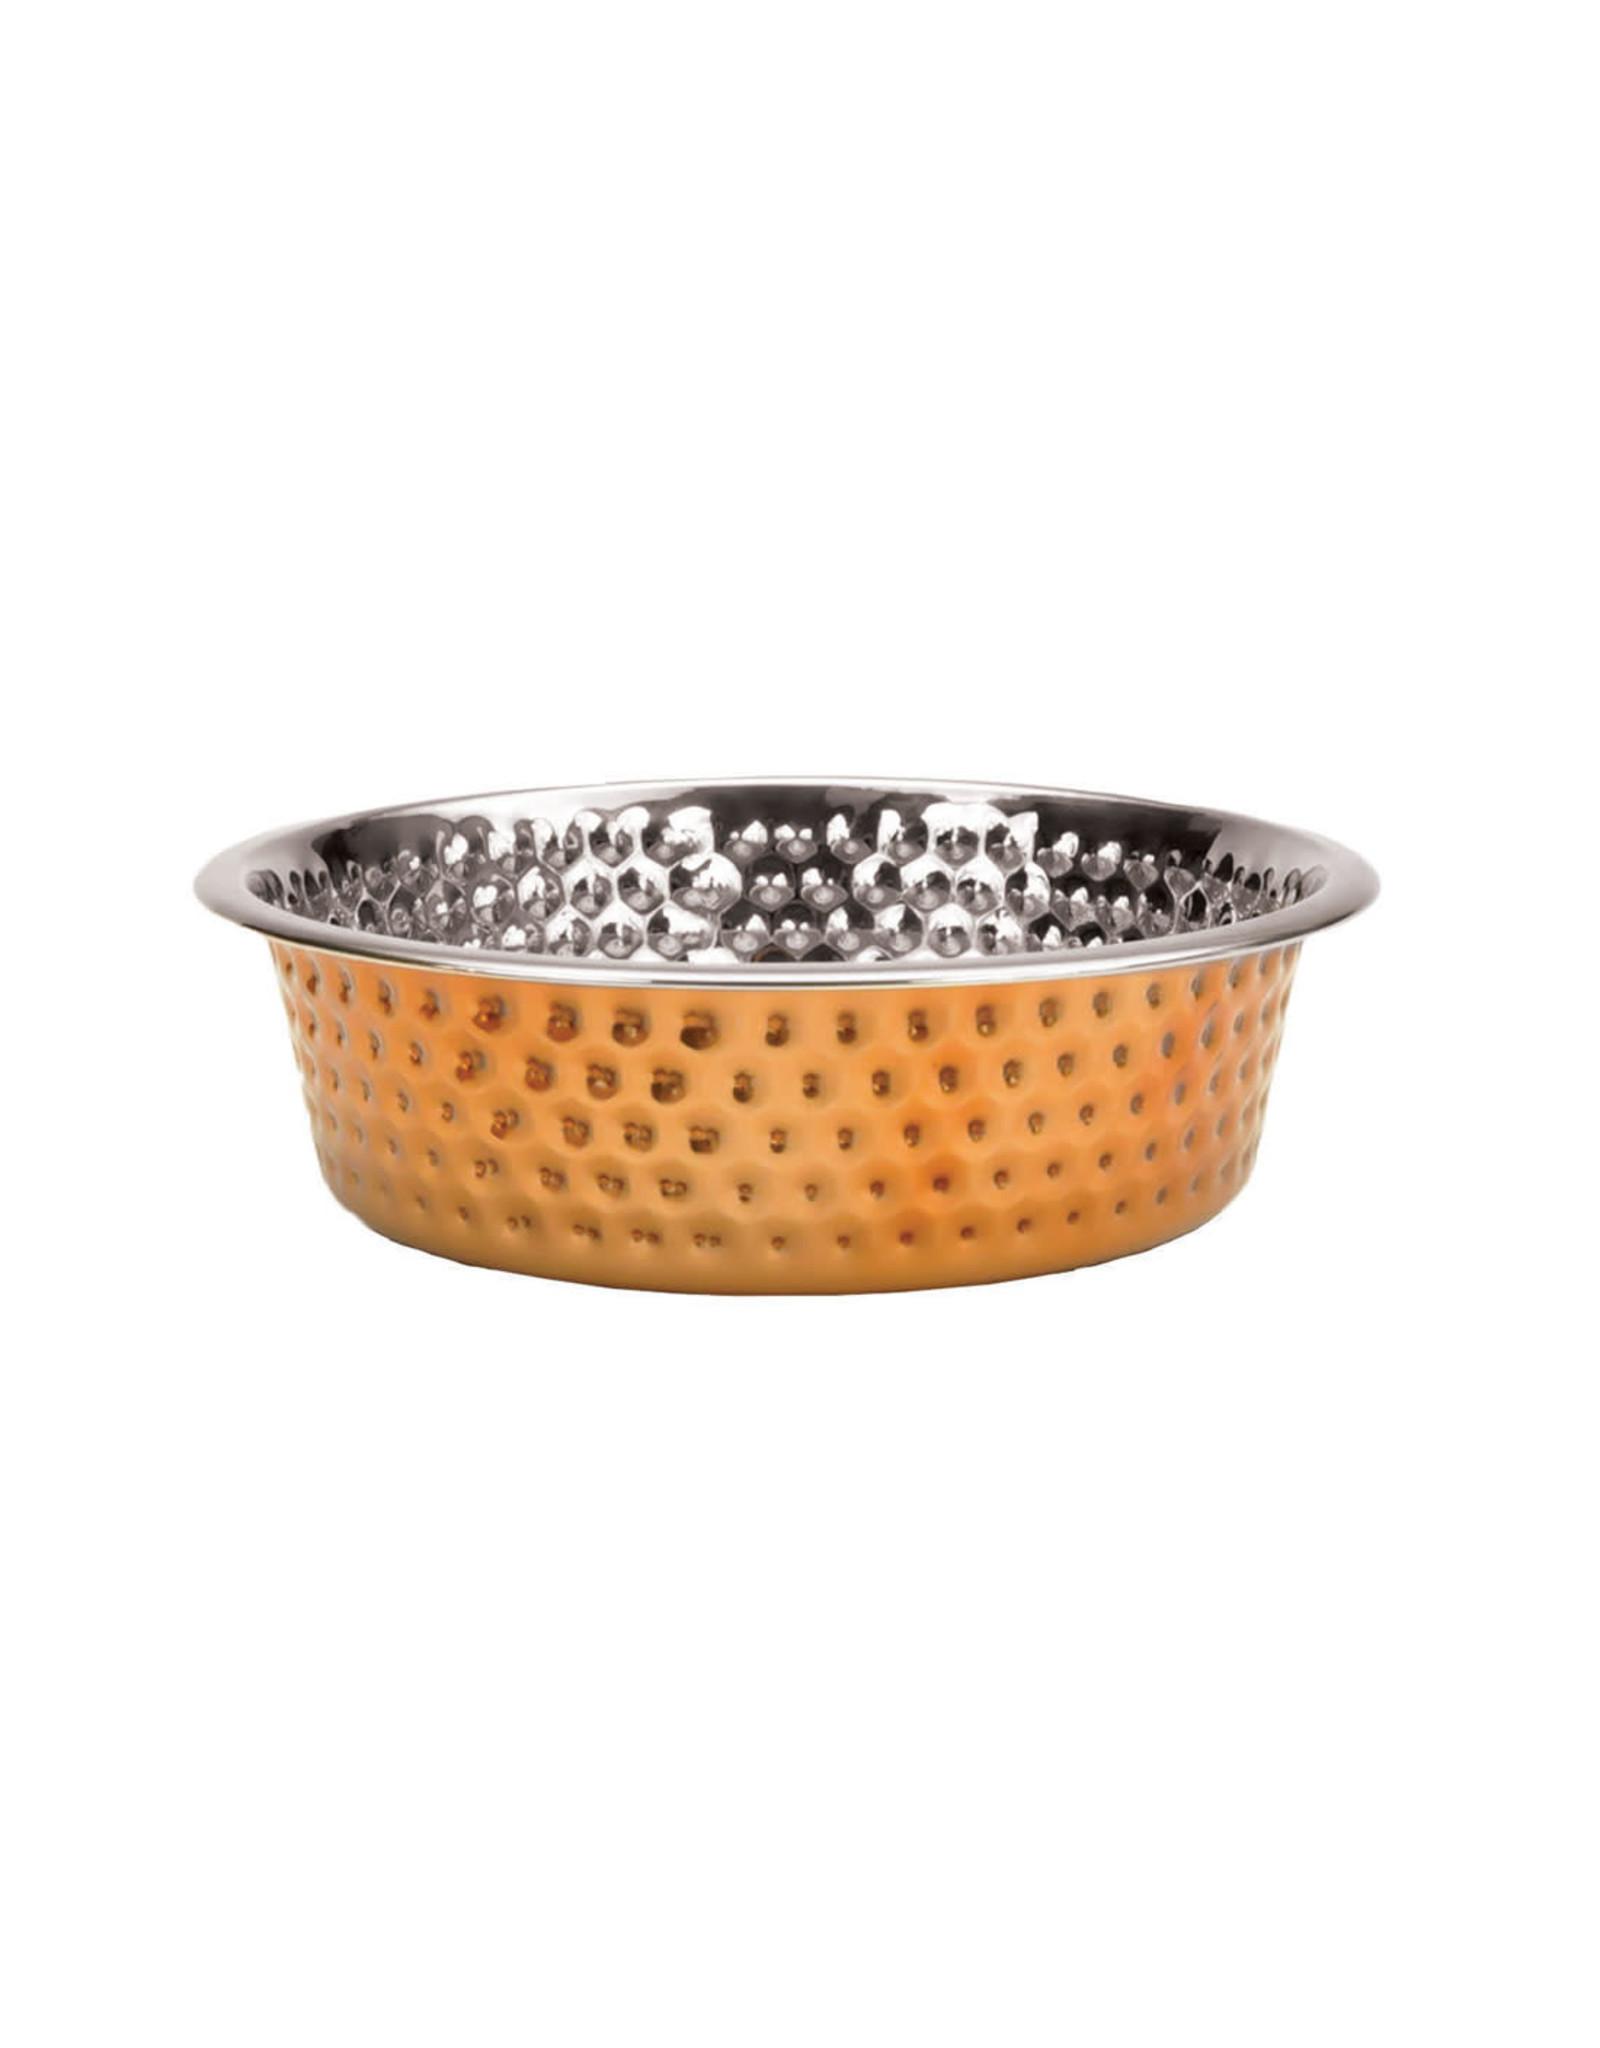 Coastal Pet Products Maslow Hammered Copper Bowl